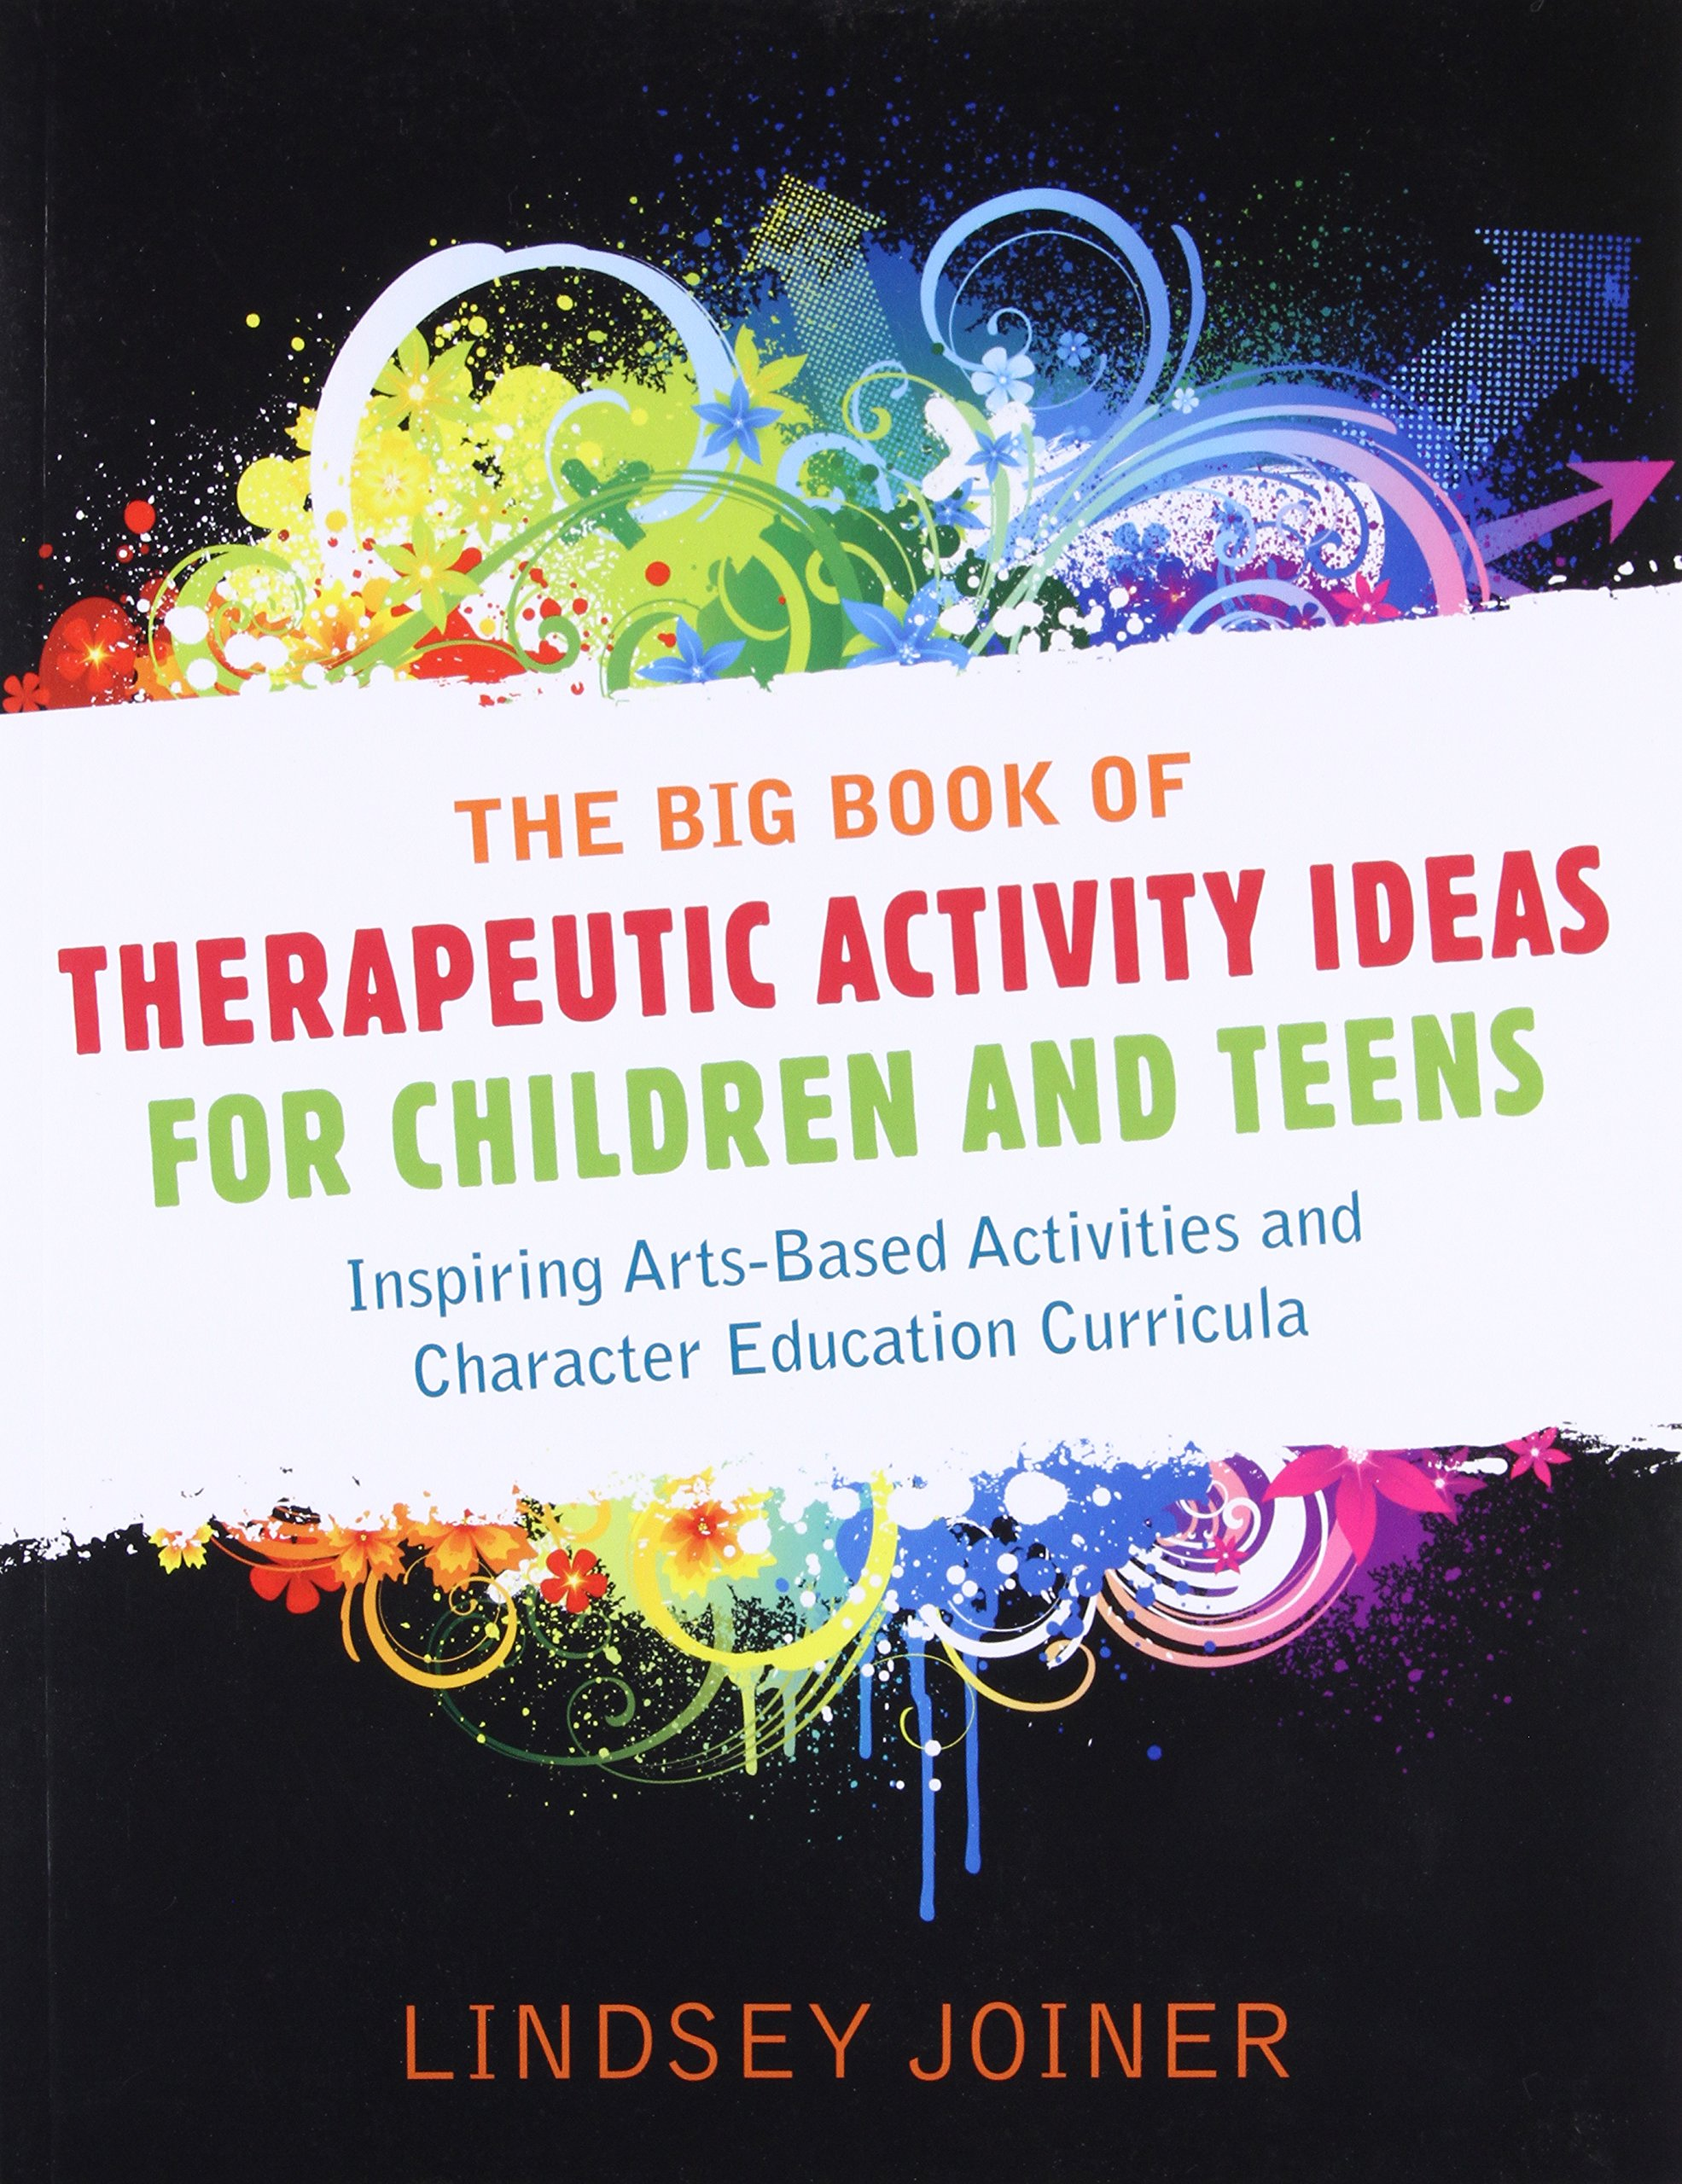 The Big Book of Therapeutic Activity Ideas for Children and Teens:  Inspiring Arts-Based Activities and Character Education Curricula: Lindsey  Joiner: ...